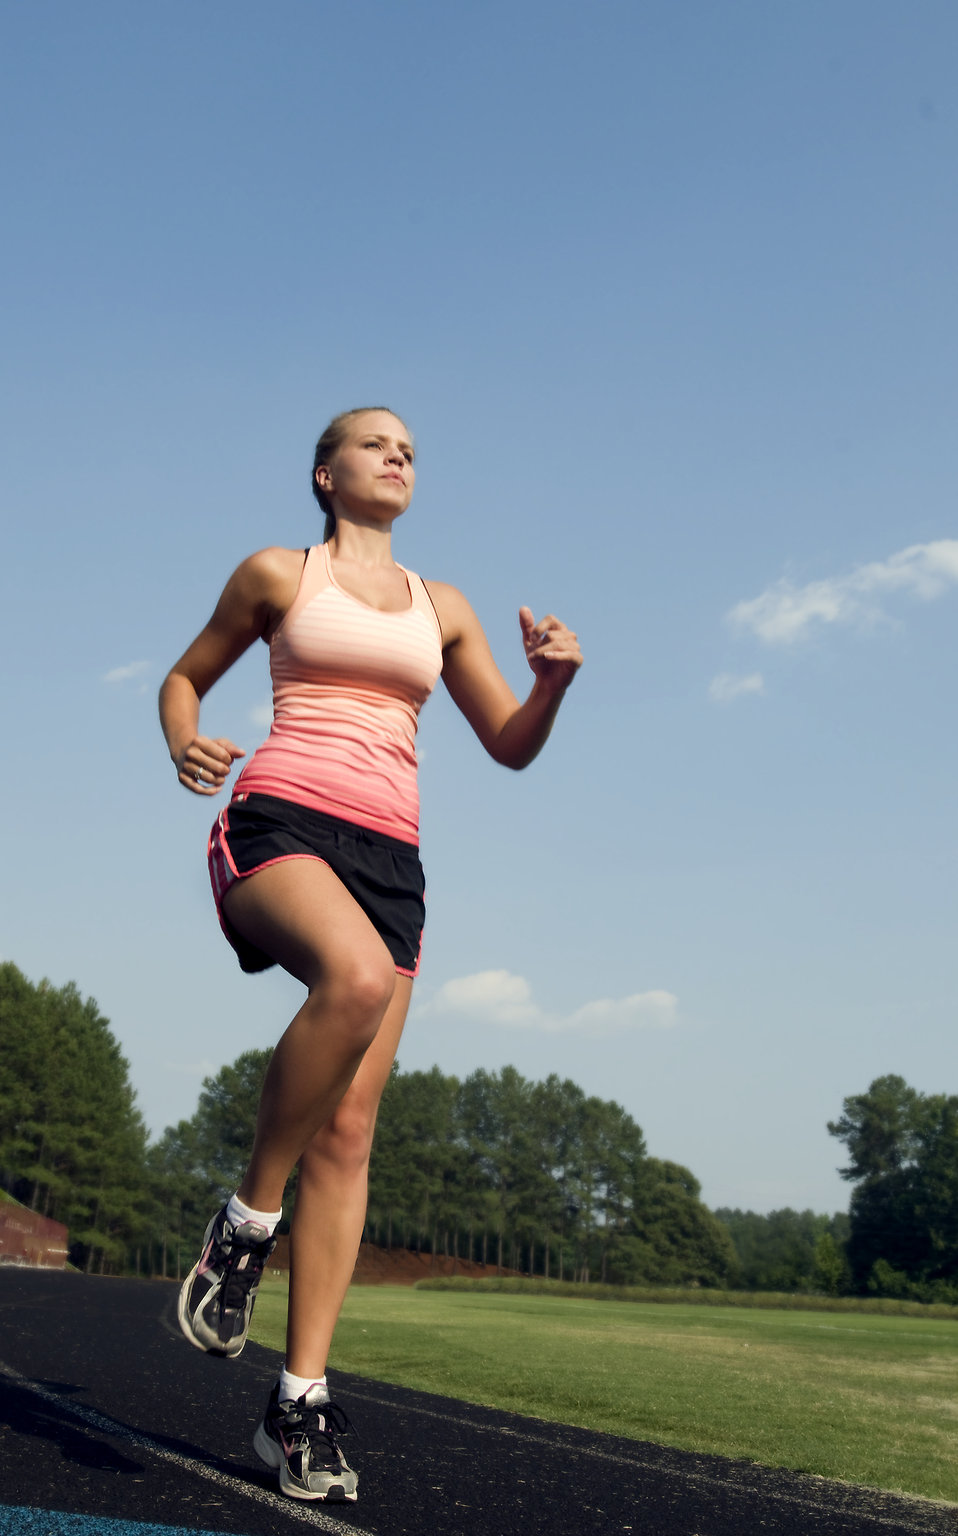 Headaches and migraines can be triggered by exercise.